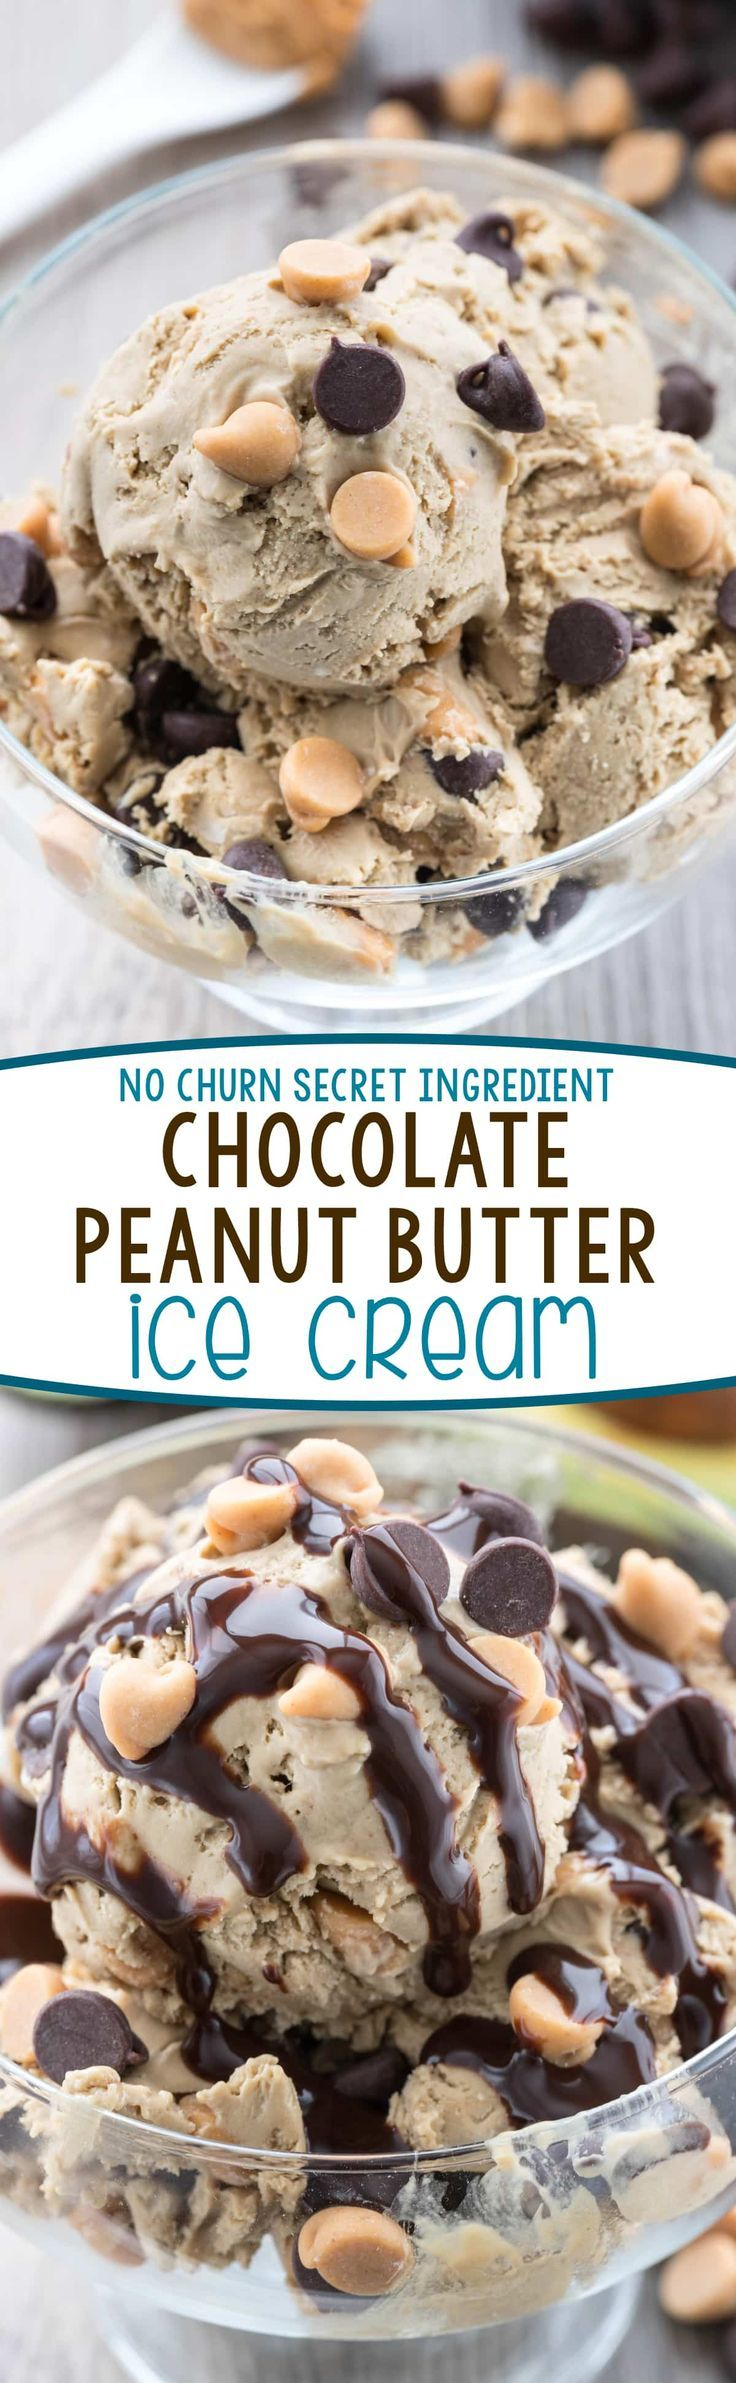 Easy No Churn Chocolate Peanut Butter Ice Cream - this easy ice cream recipe has a secret ingredient to keep it smooth and creamy and is FULL of chocolate peanut butter flavor!